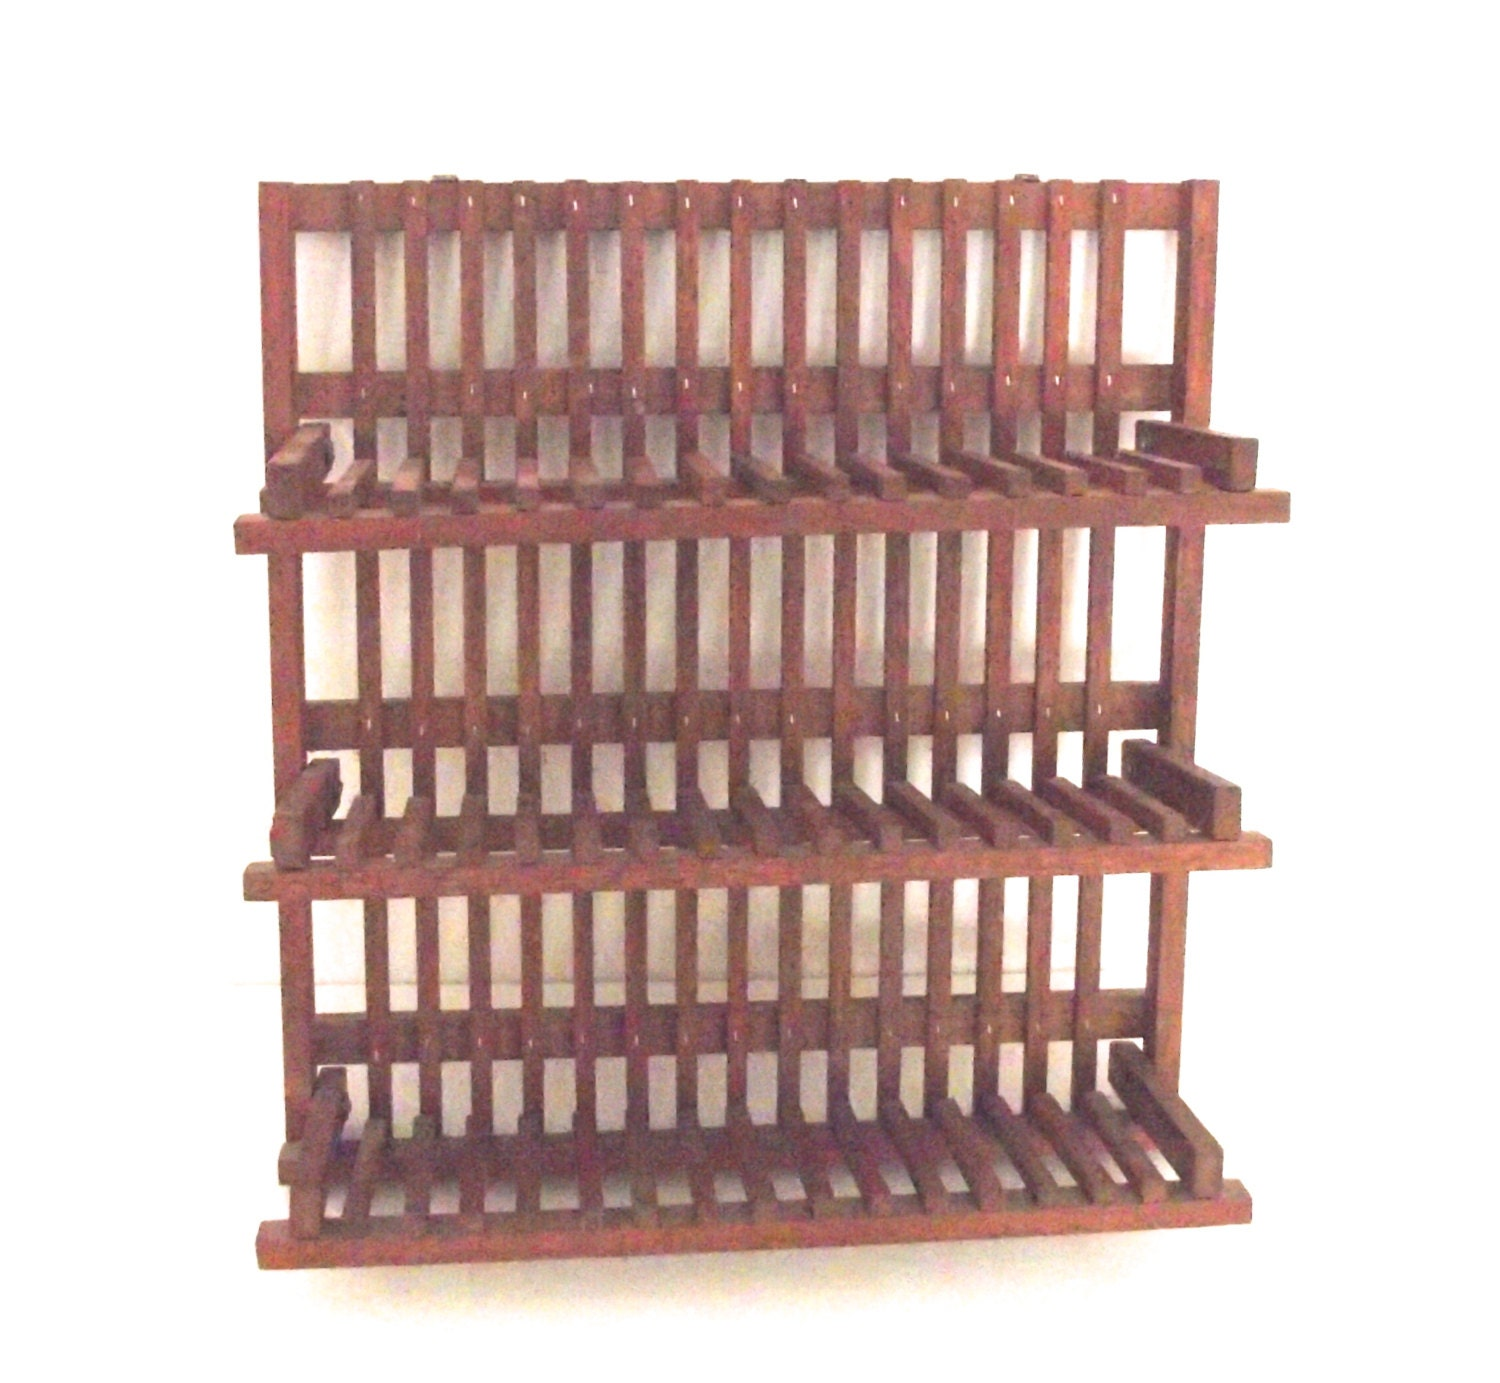 Vintage Wooden Wall Shelf Plate Rack With Fold Up Shelves